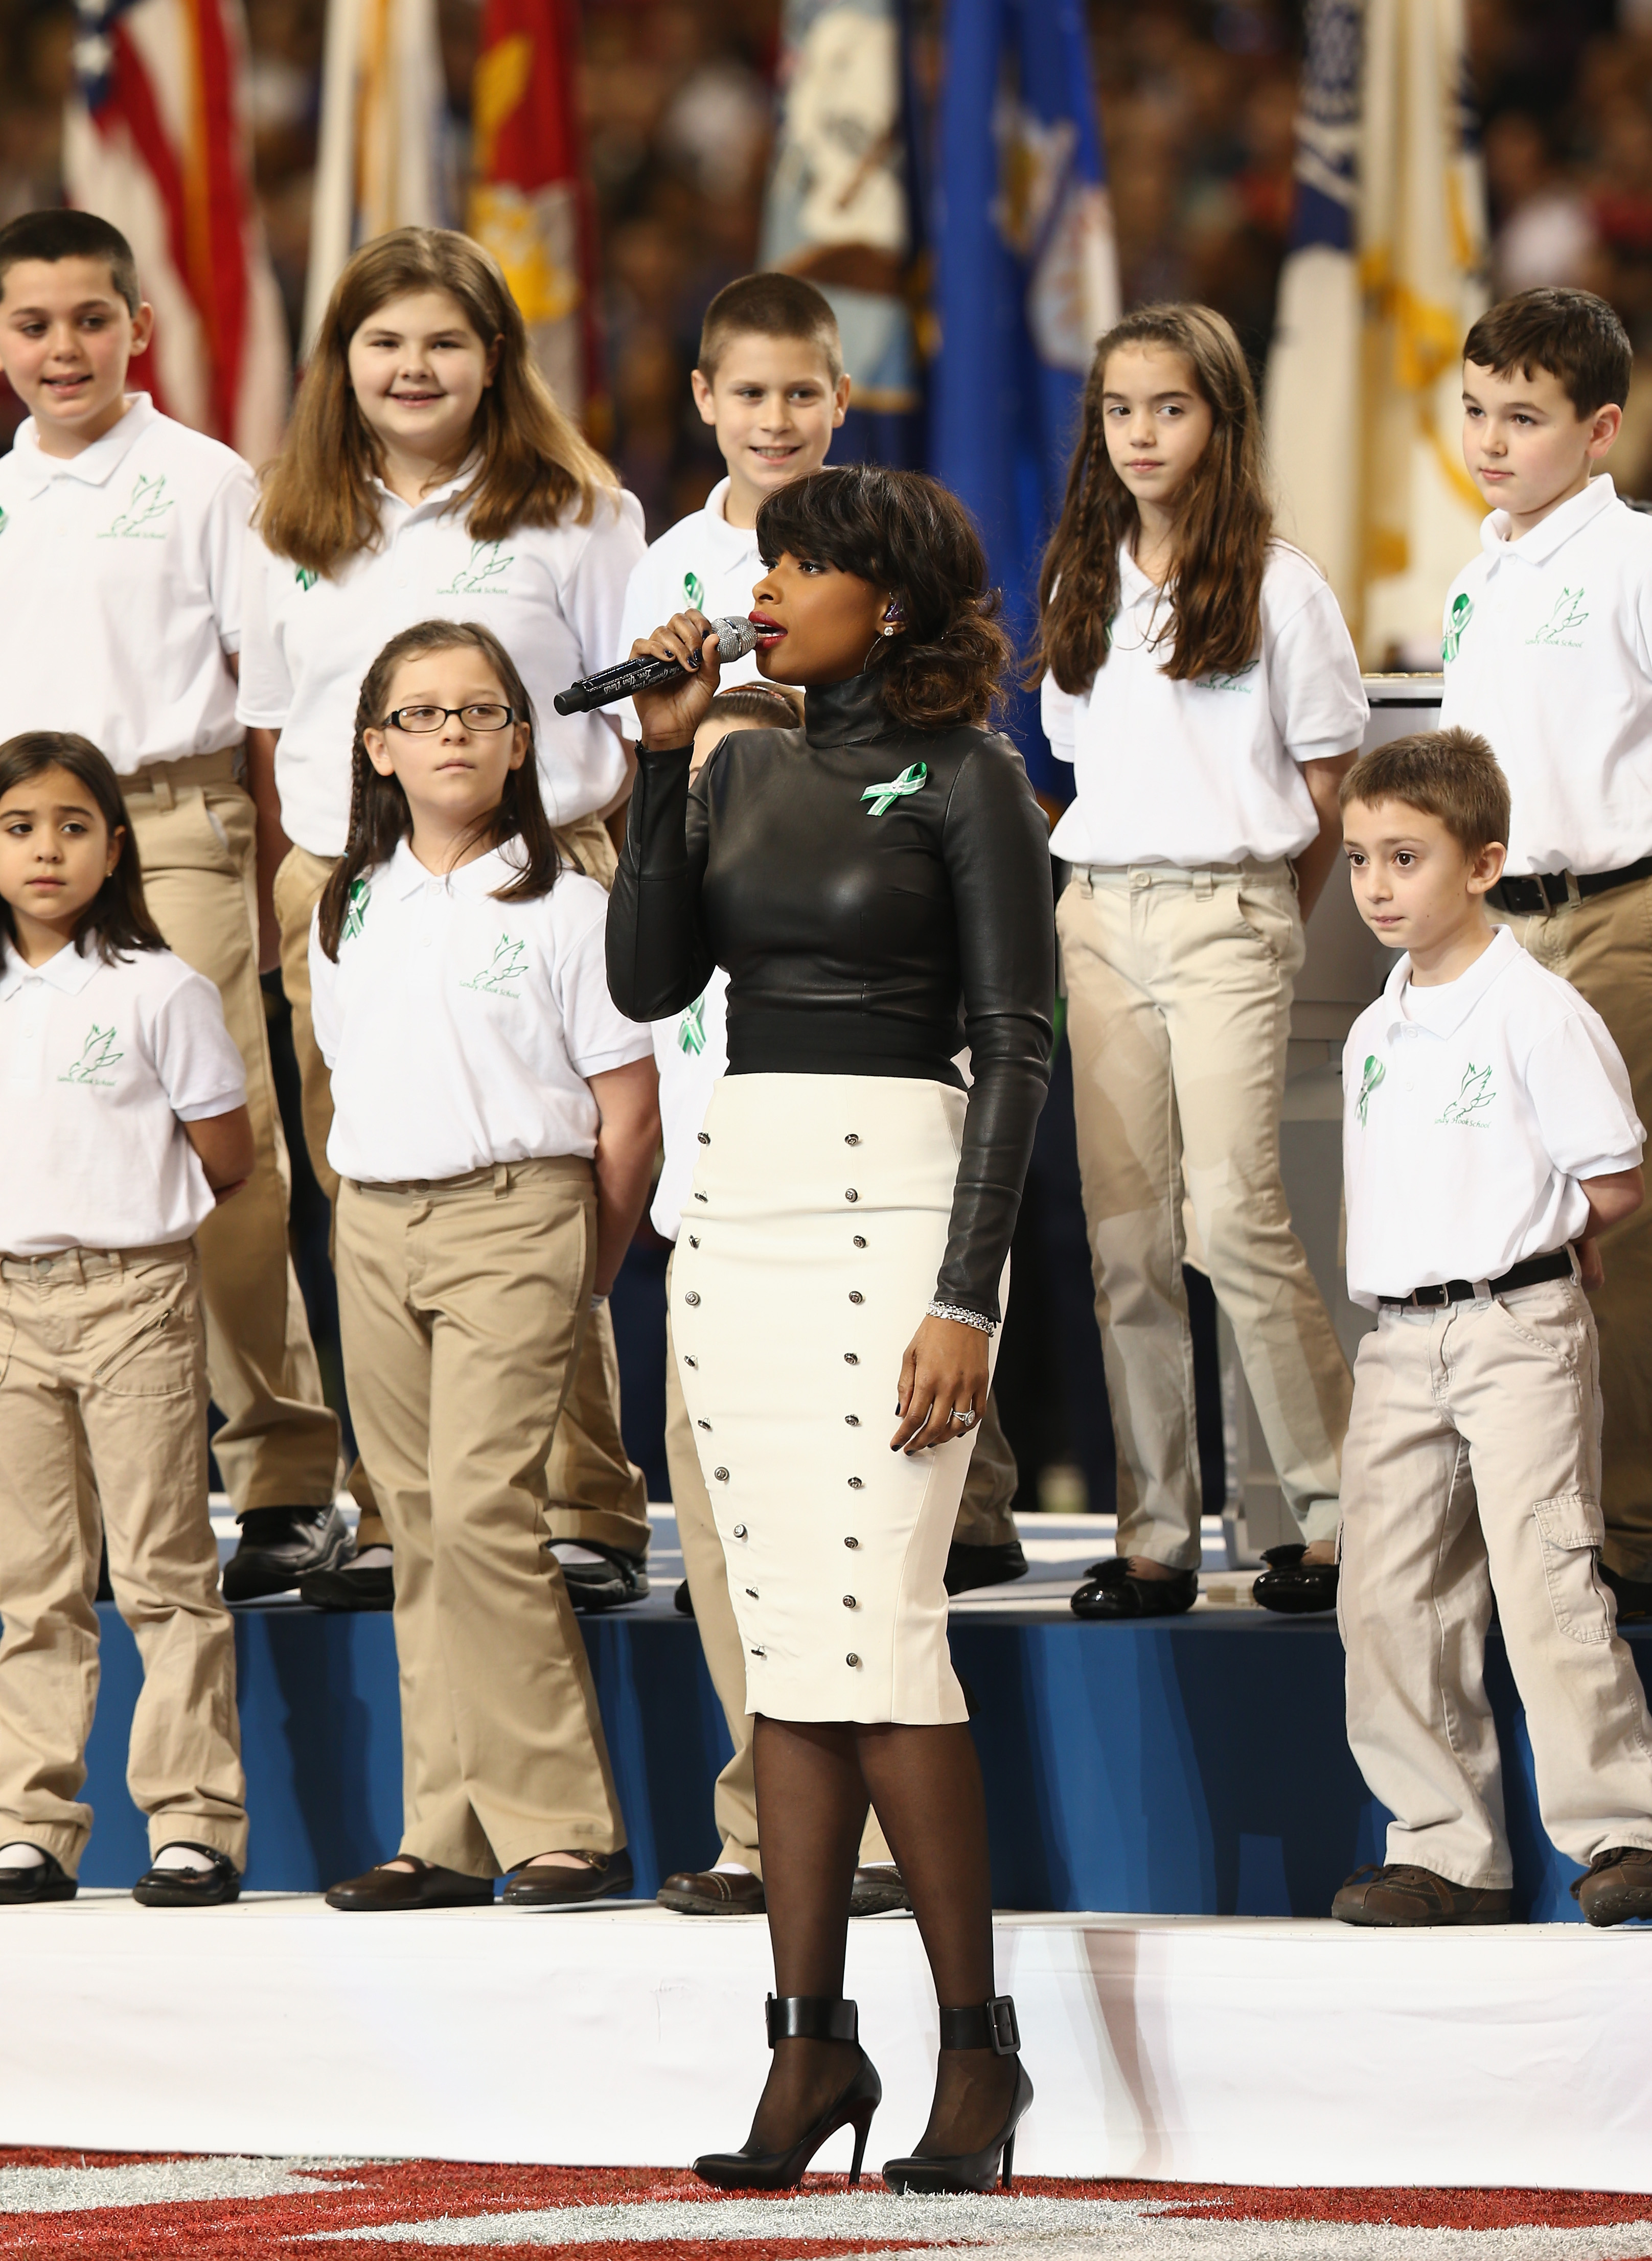 sandy hook super bowl Jennifer hudson will join the chorus from sandy hook elementary school to sing america the beautiful before sunday's super bowl game nfl spokesman brian mccarthy said thursday that the grammy and oscar-winning singer would join the sandy hook chorus it features 26 children from the school in.